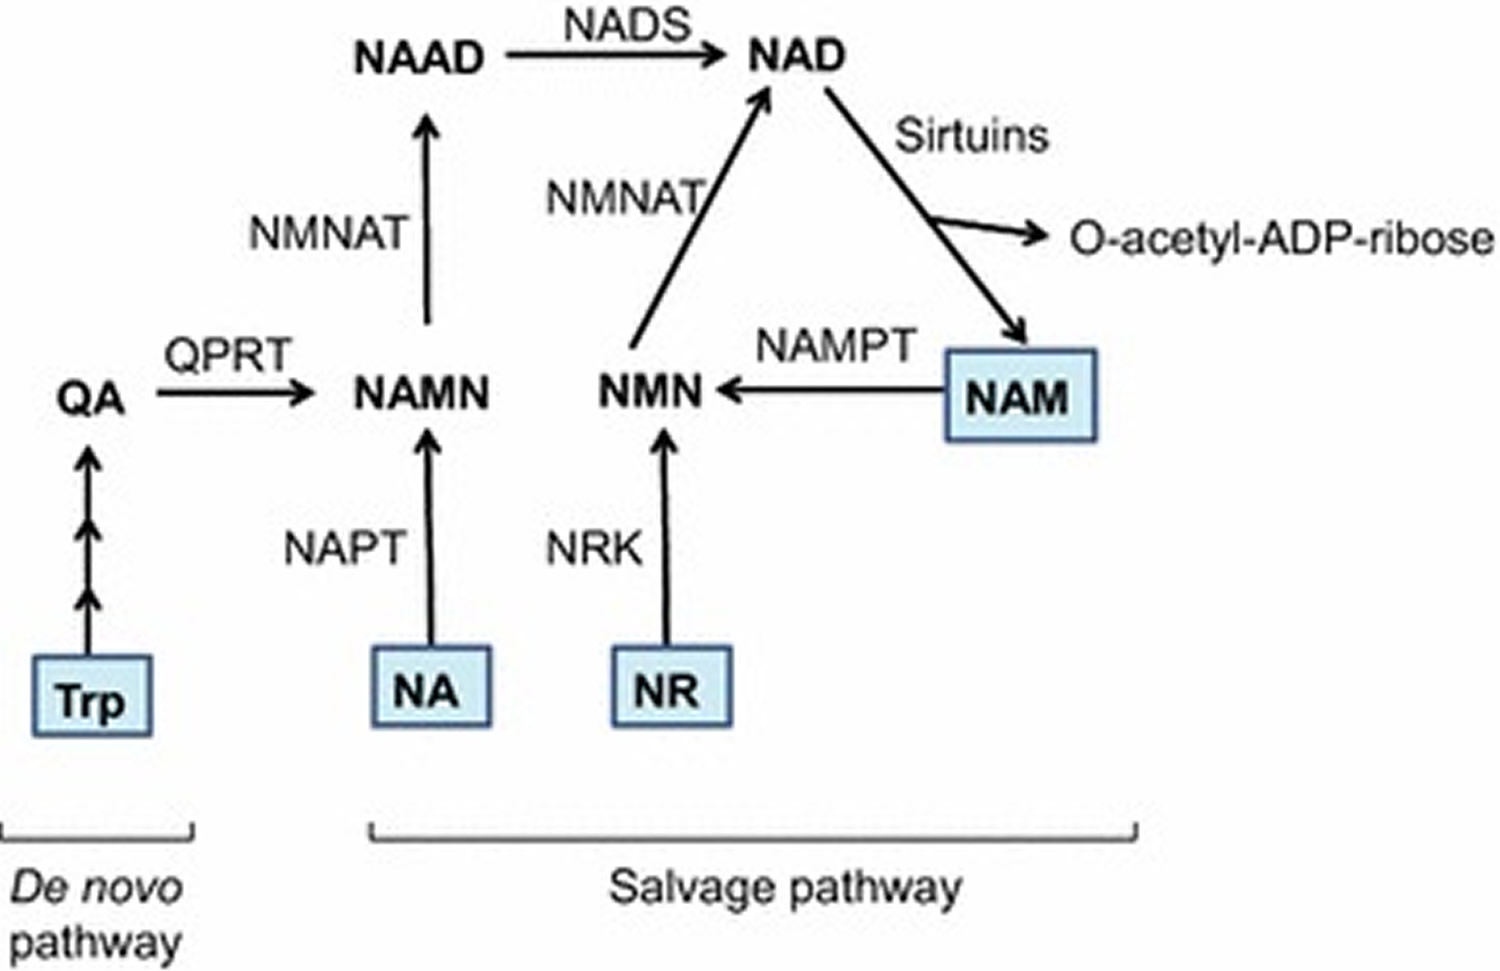 NAD biosynthesis